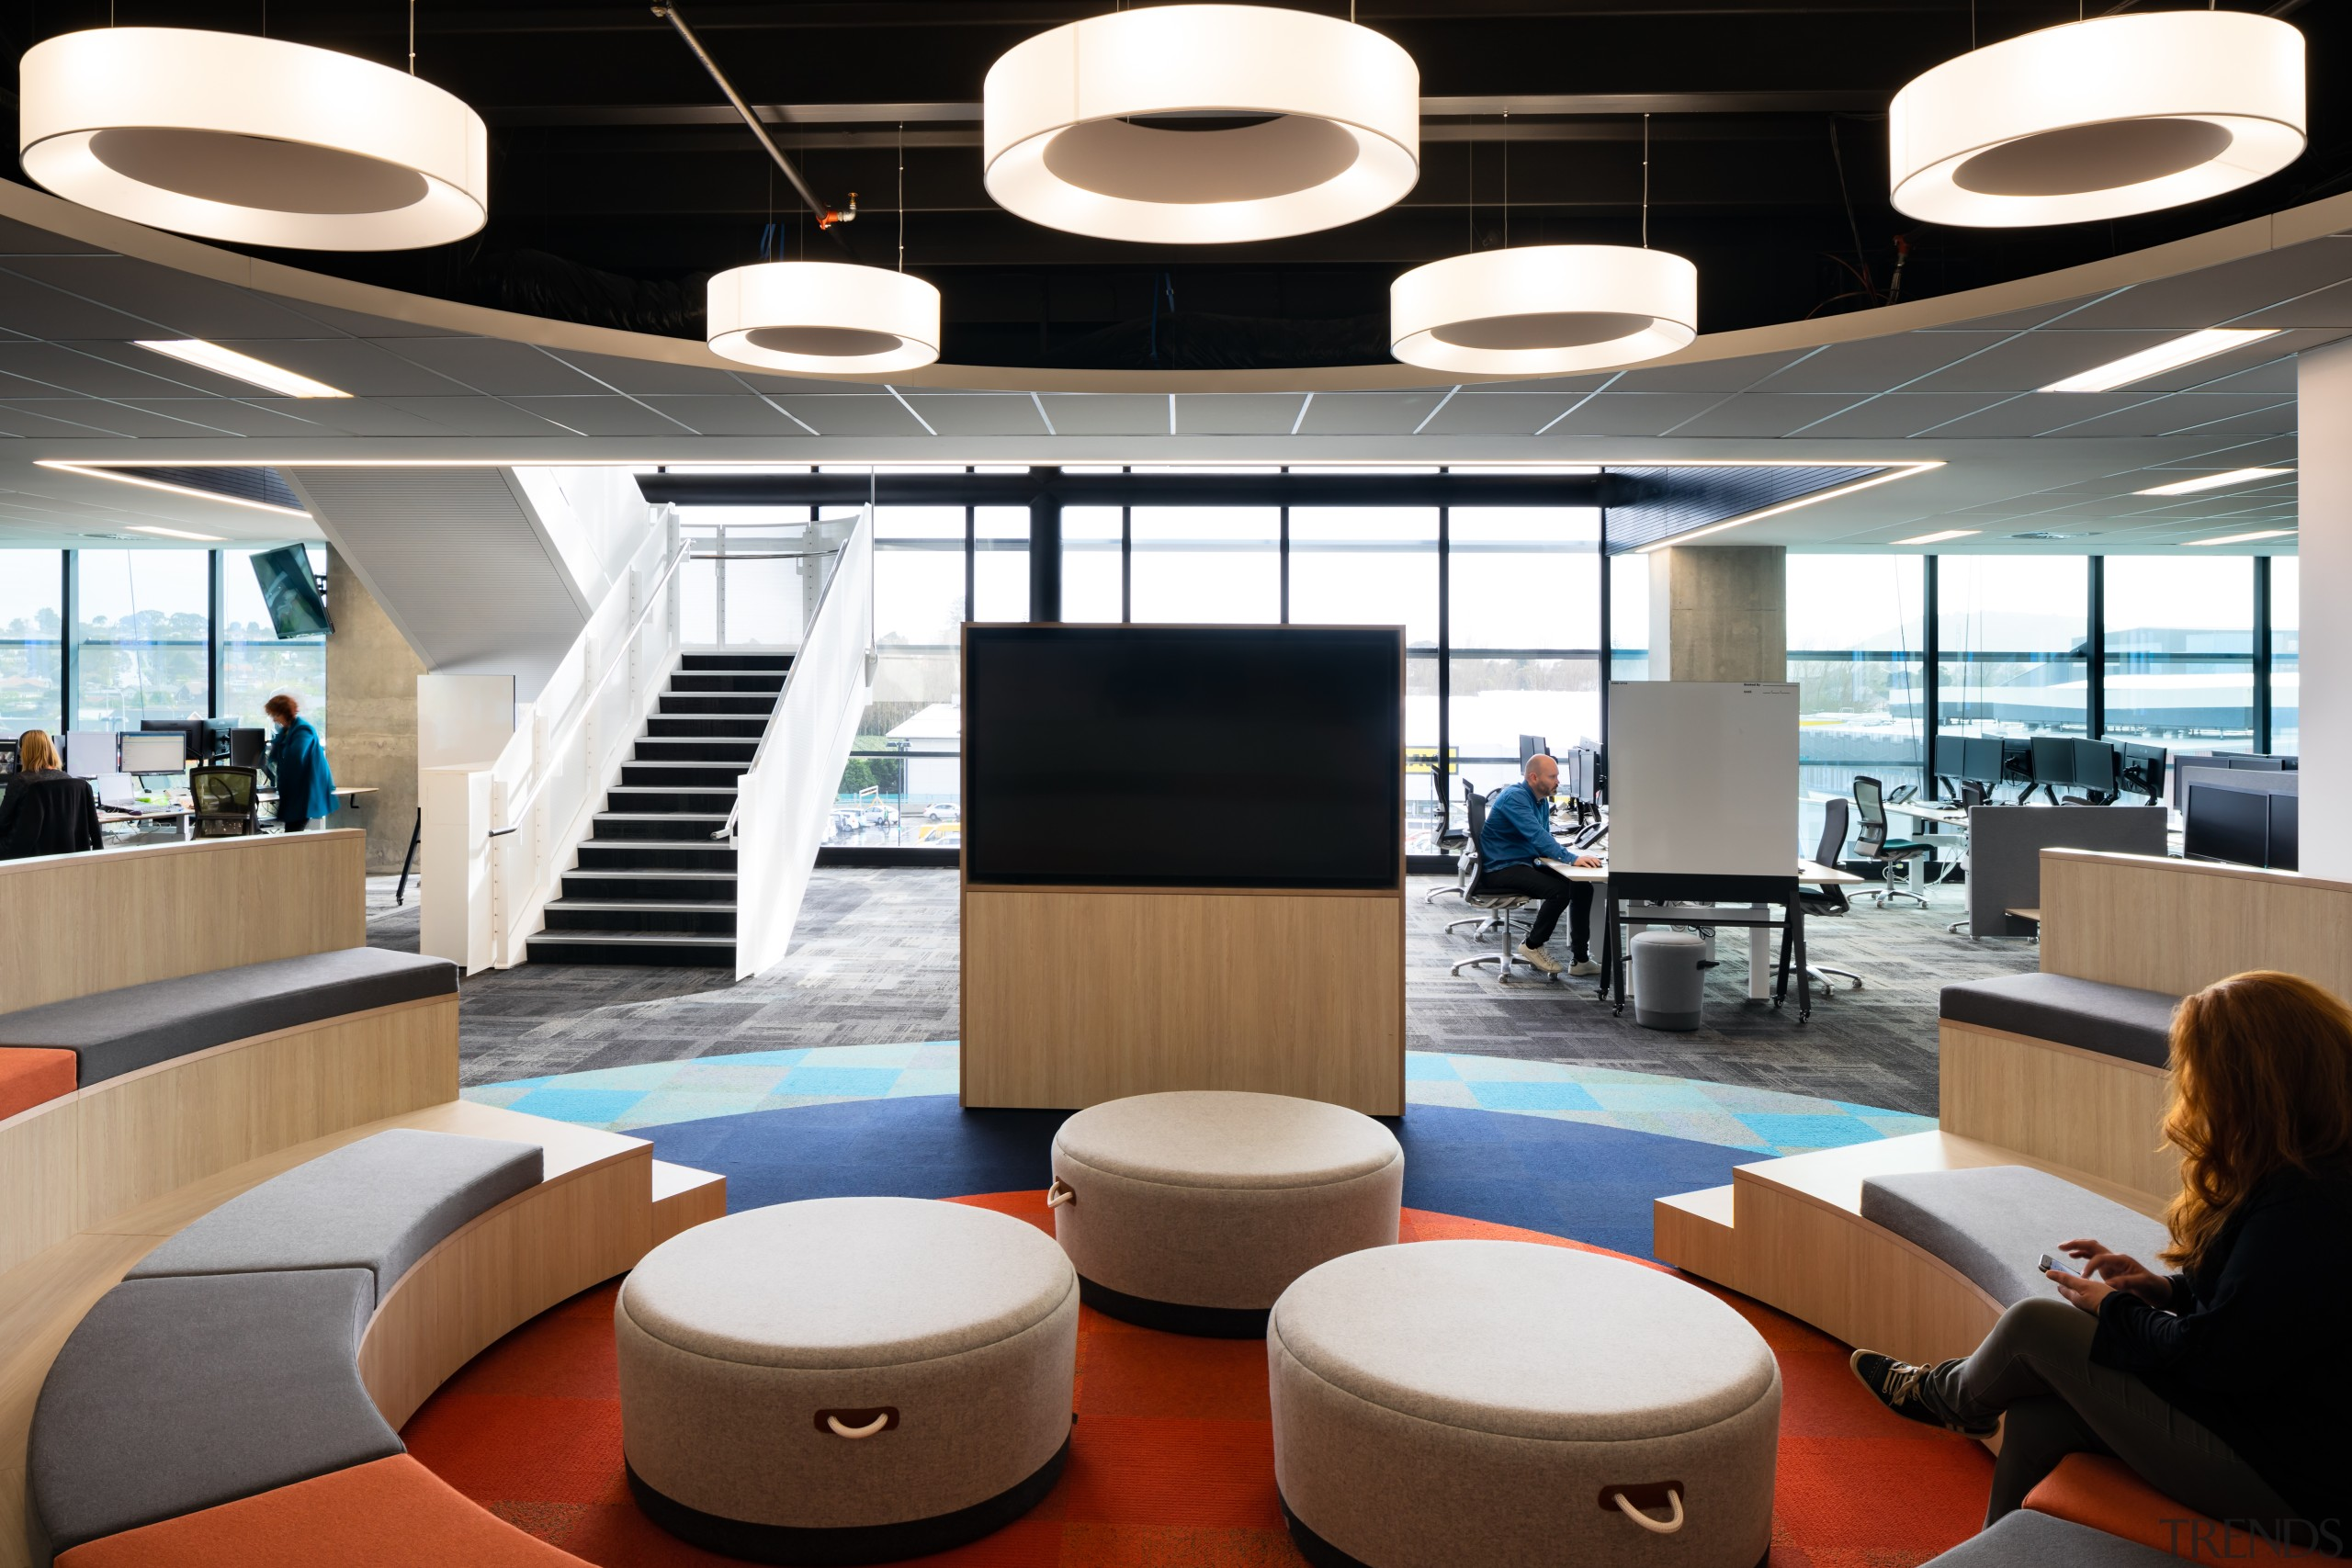 Well-rounded – the IAG Hub at No 1. architecture, building, ceiling fixture, design, floor, furniture, interior design, lamp, light fixture, lighting, lobby, office, IAG,  No 1 Sylvia Park